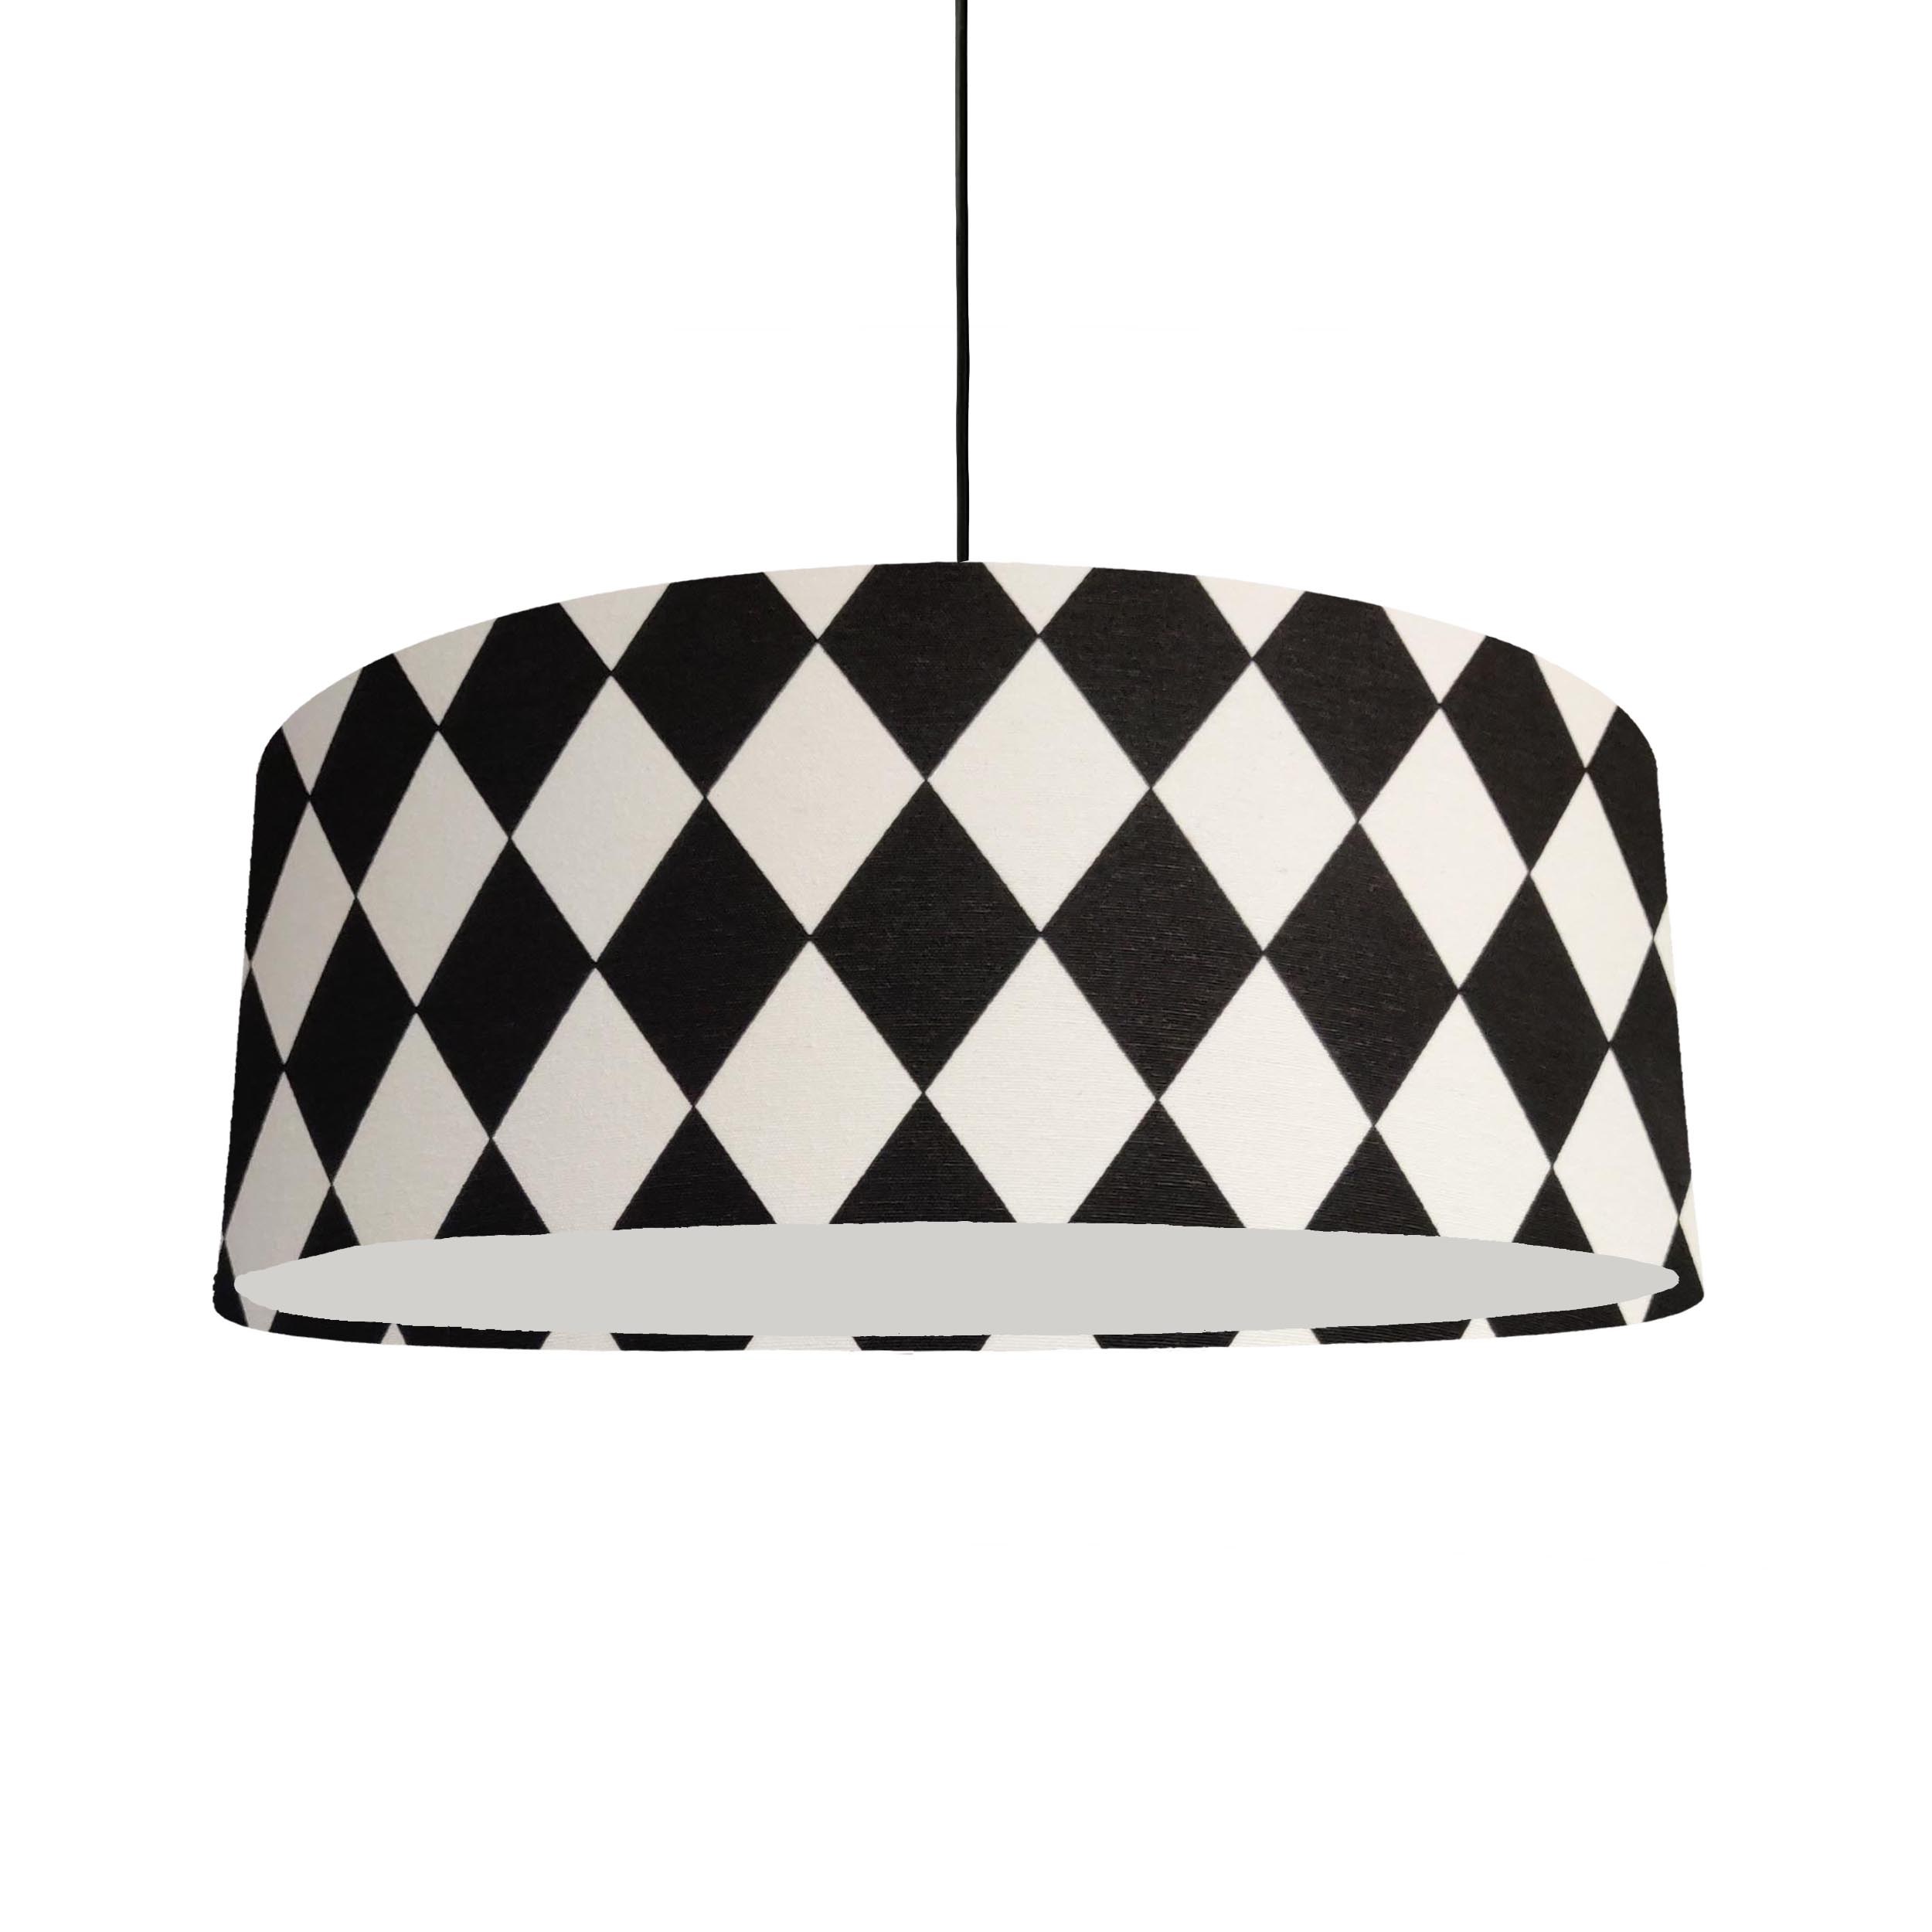 Extra Large Lampshade in Black and White Chequered Fabric